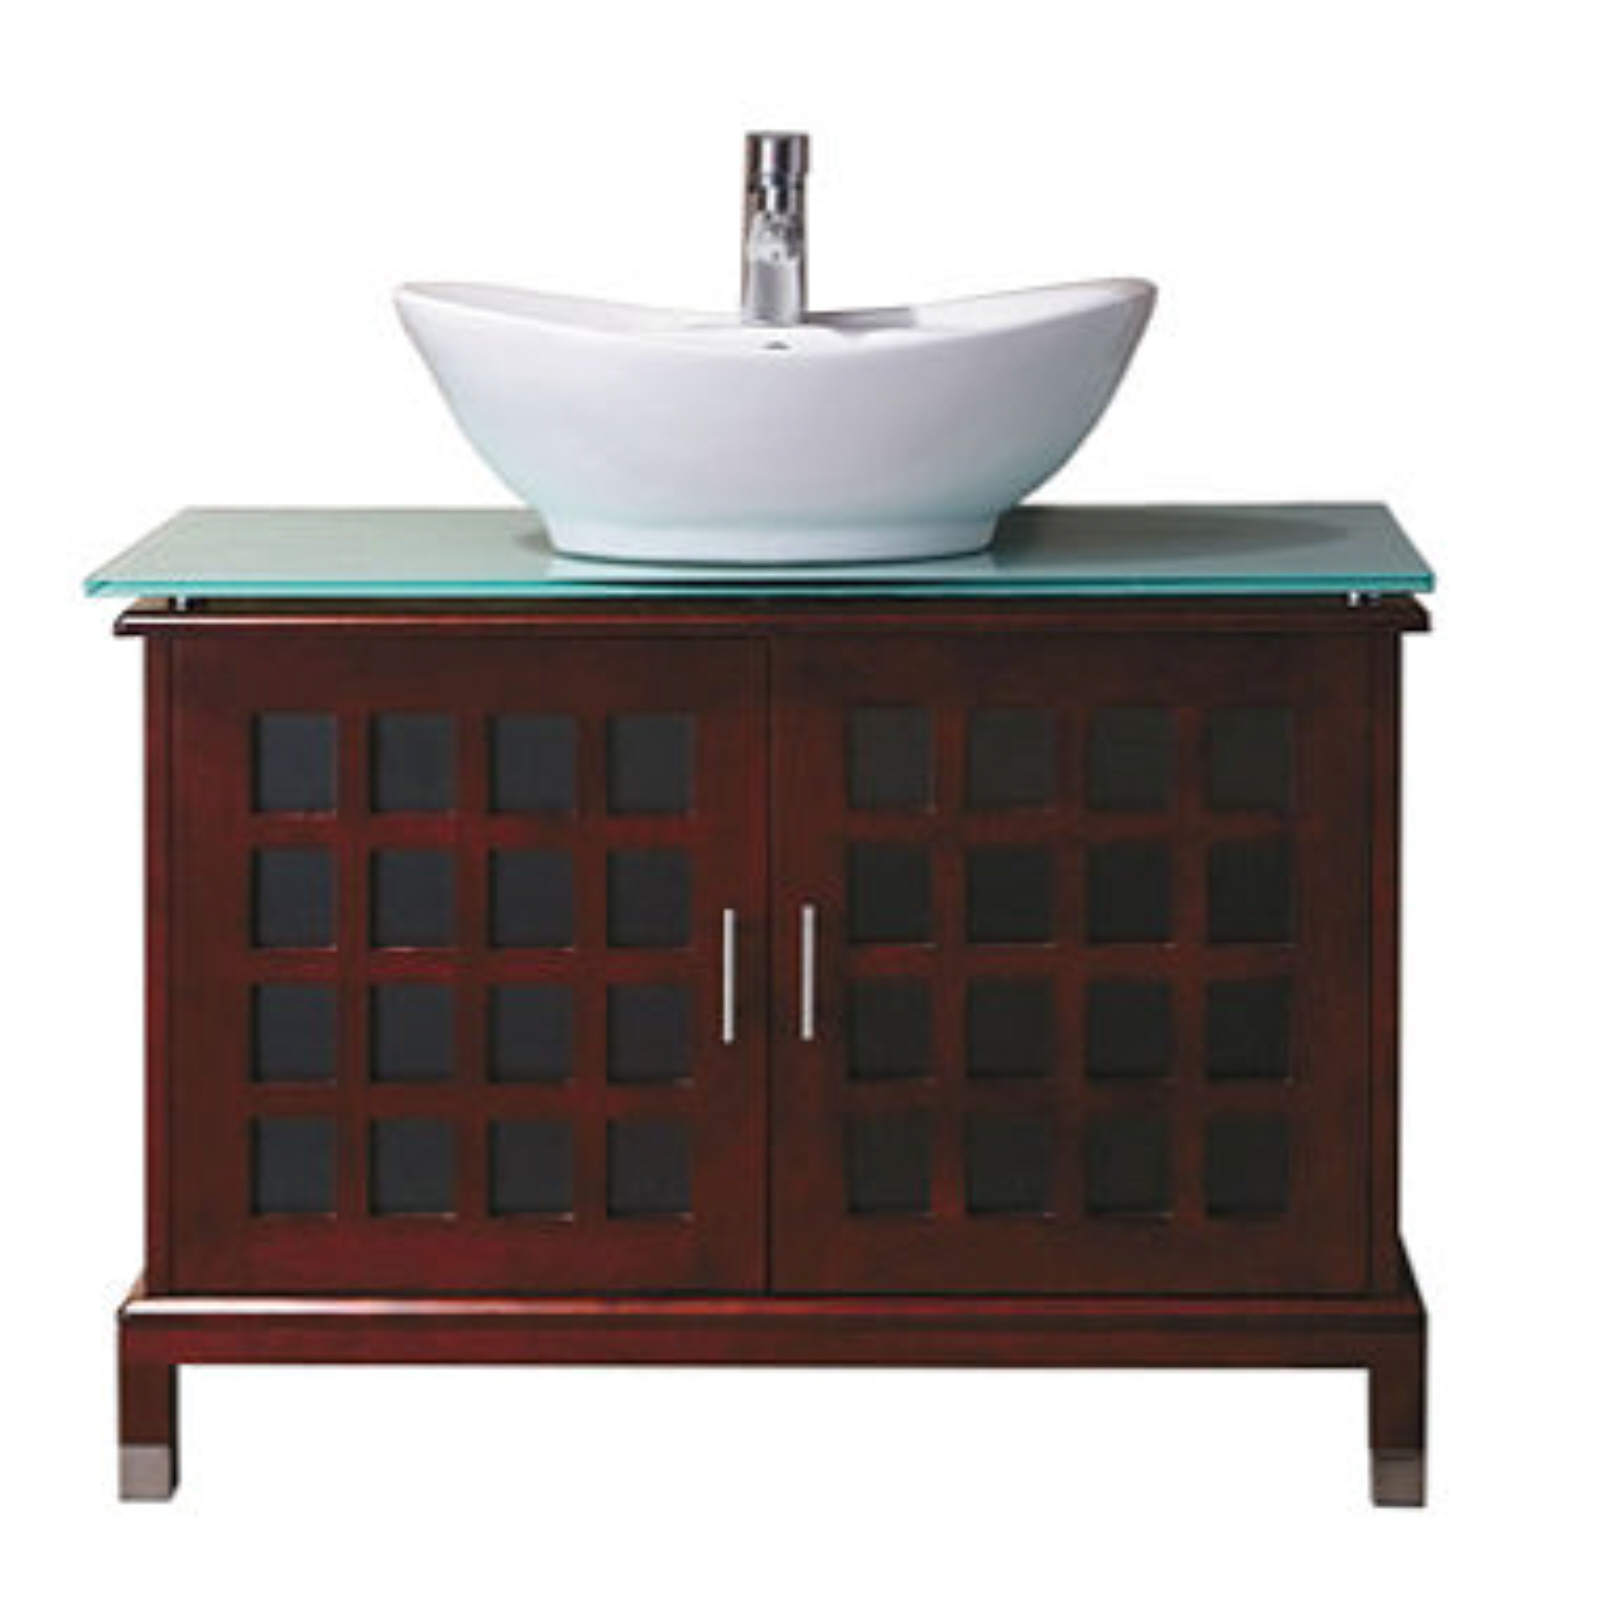 Jenna Bathroom Vanity Tempered Glass Top Model 502268 Ceramic Basin NEW